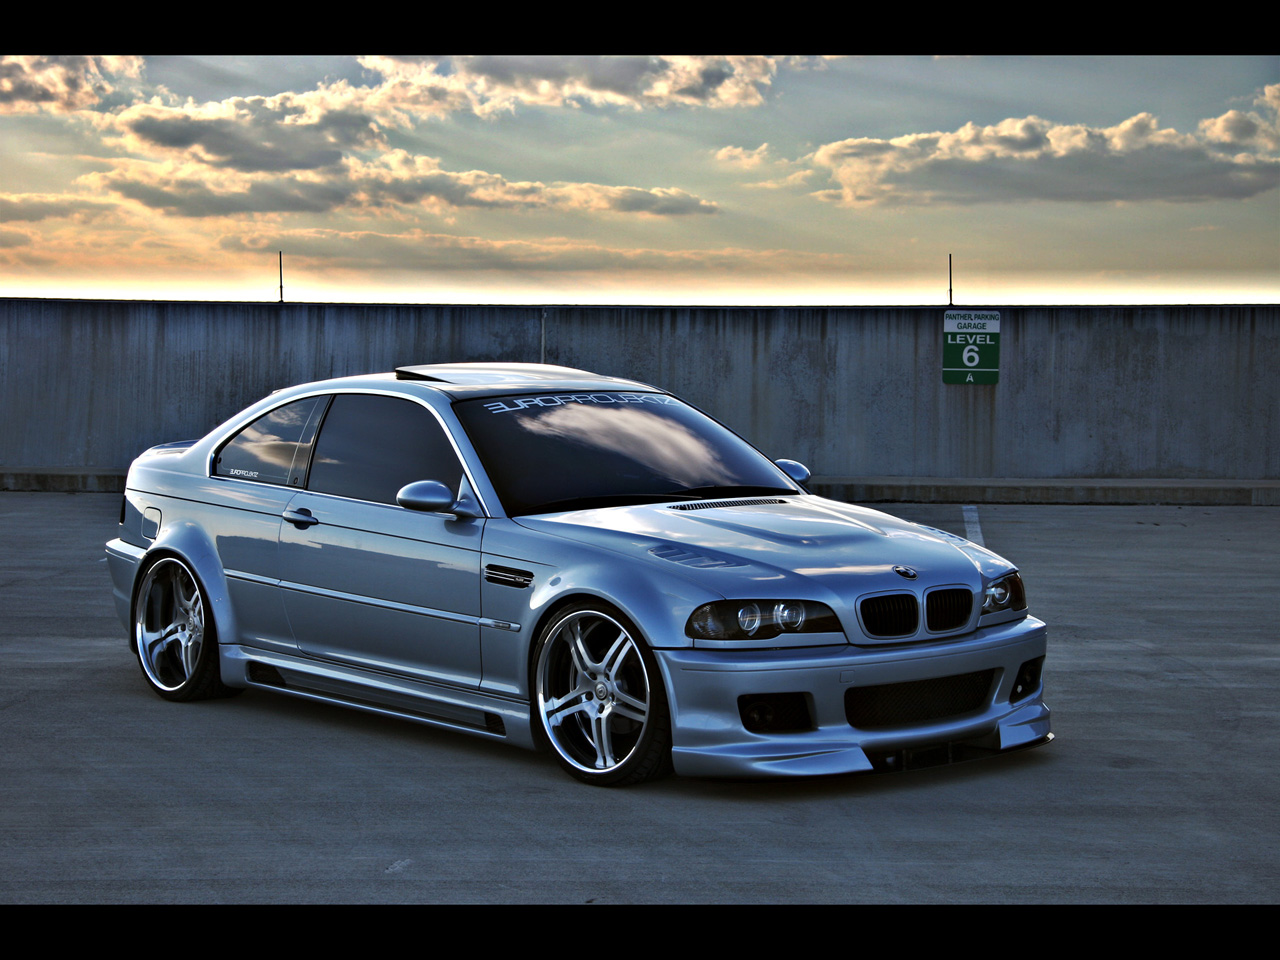 2003 BMW 325Ci Europrojektz ///OSS - Front And Side 1 - 1280x960 - Wallpaper